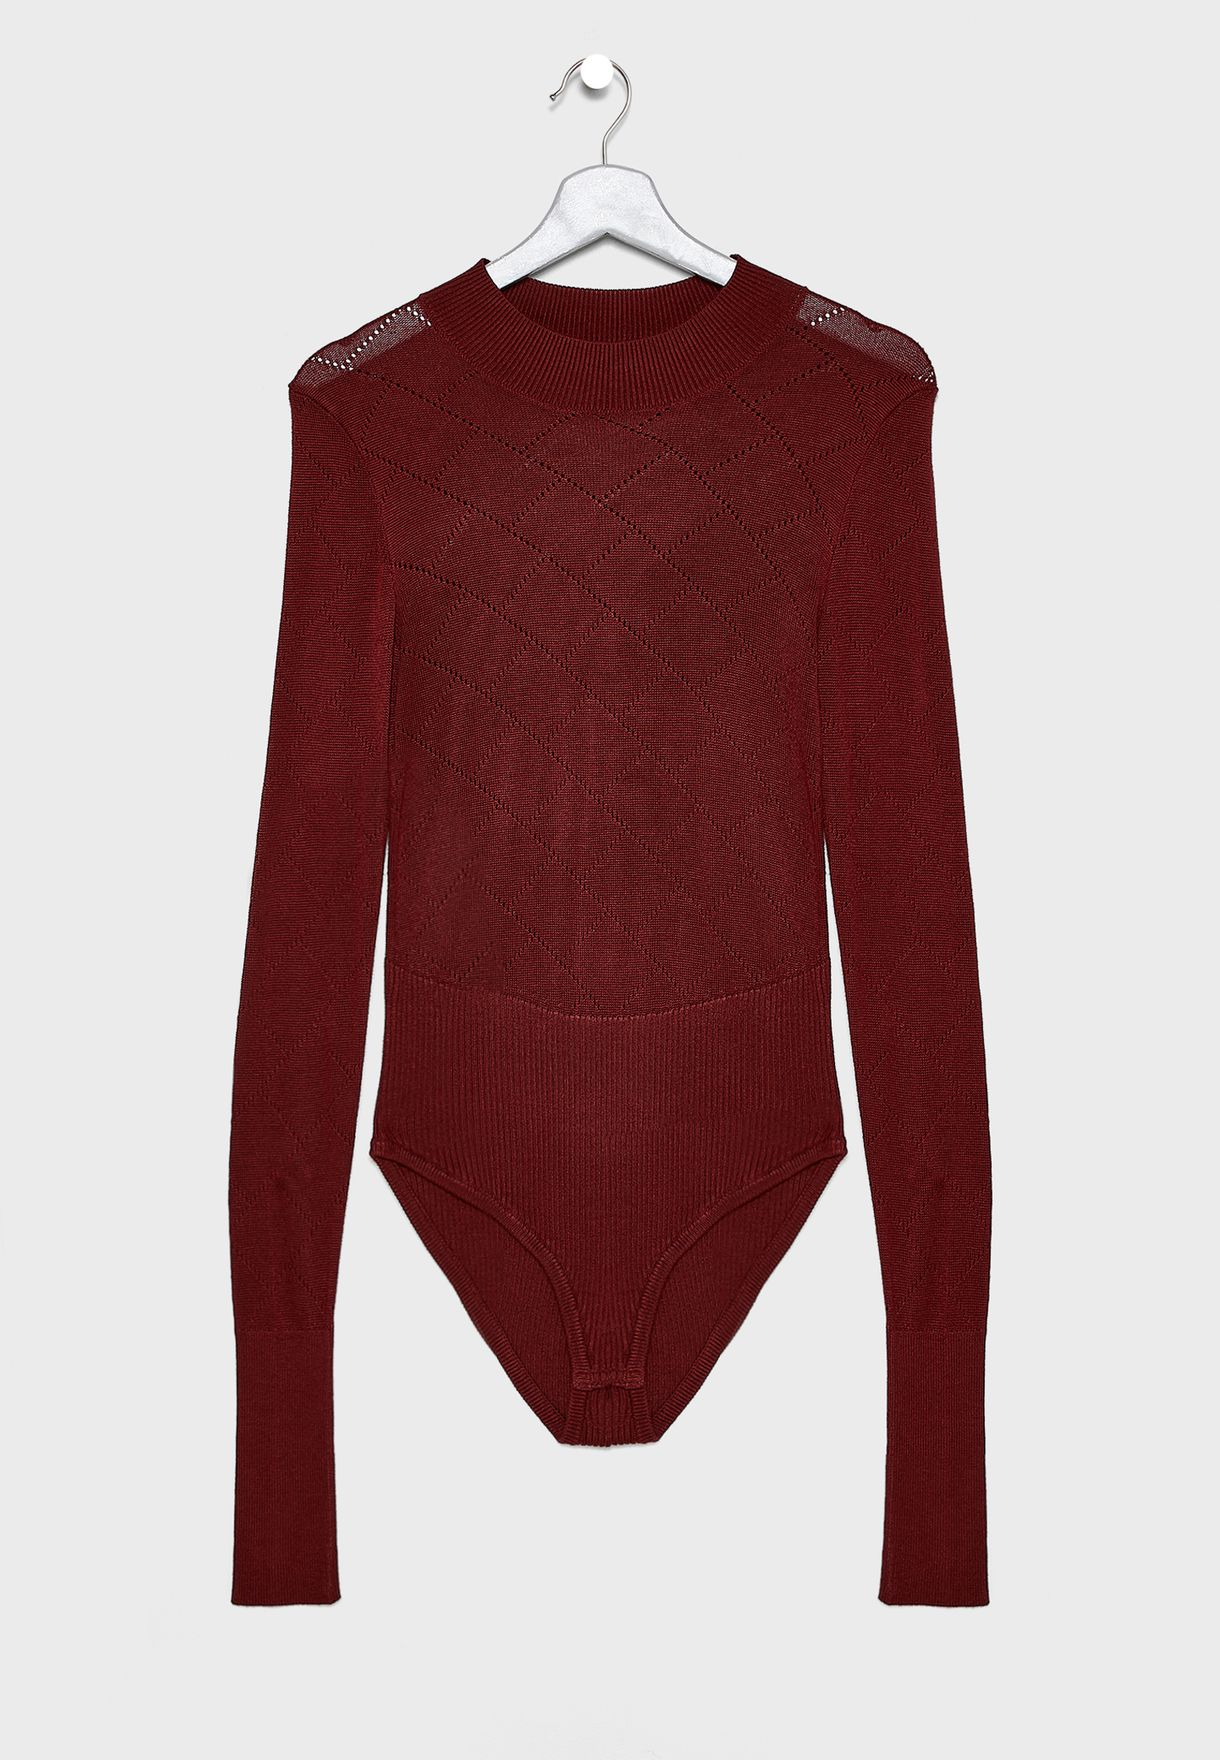 What The Pointelle High Neck Mesh Top